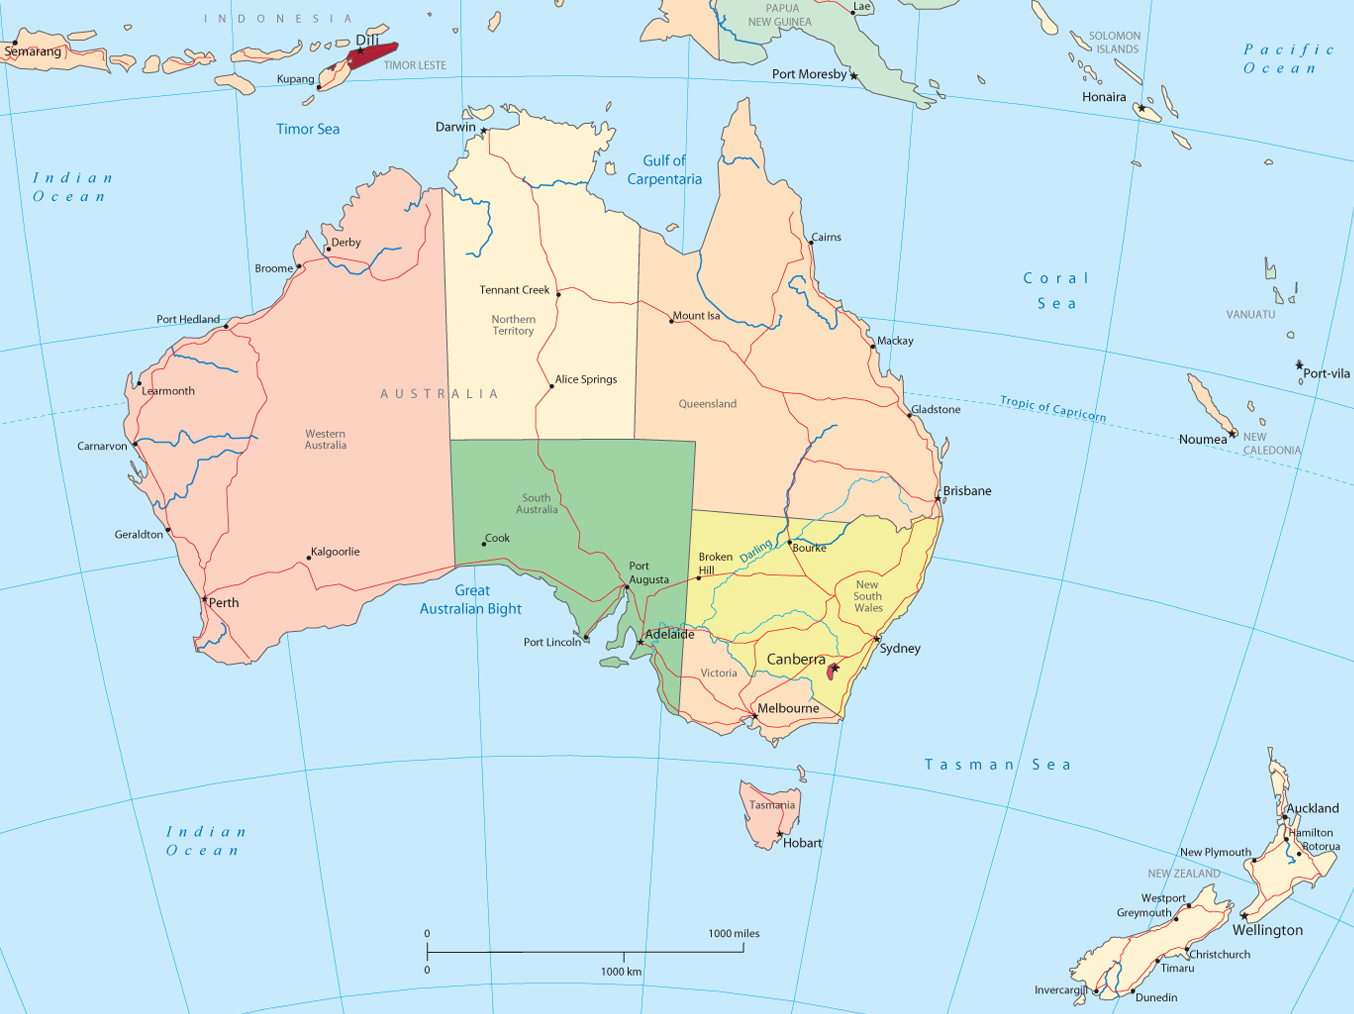 New Zealand Australia Map.Australia And New Zealand Political Map